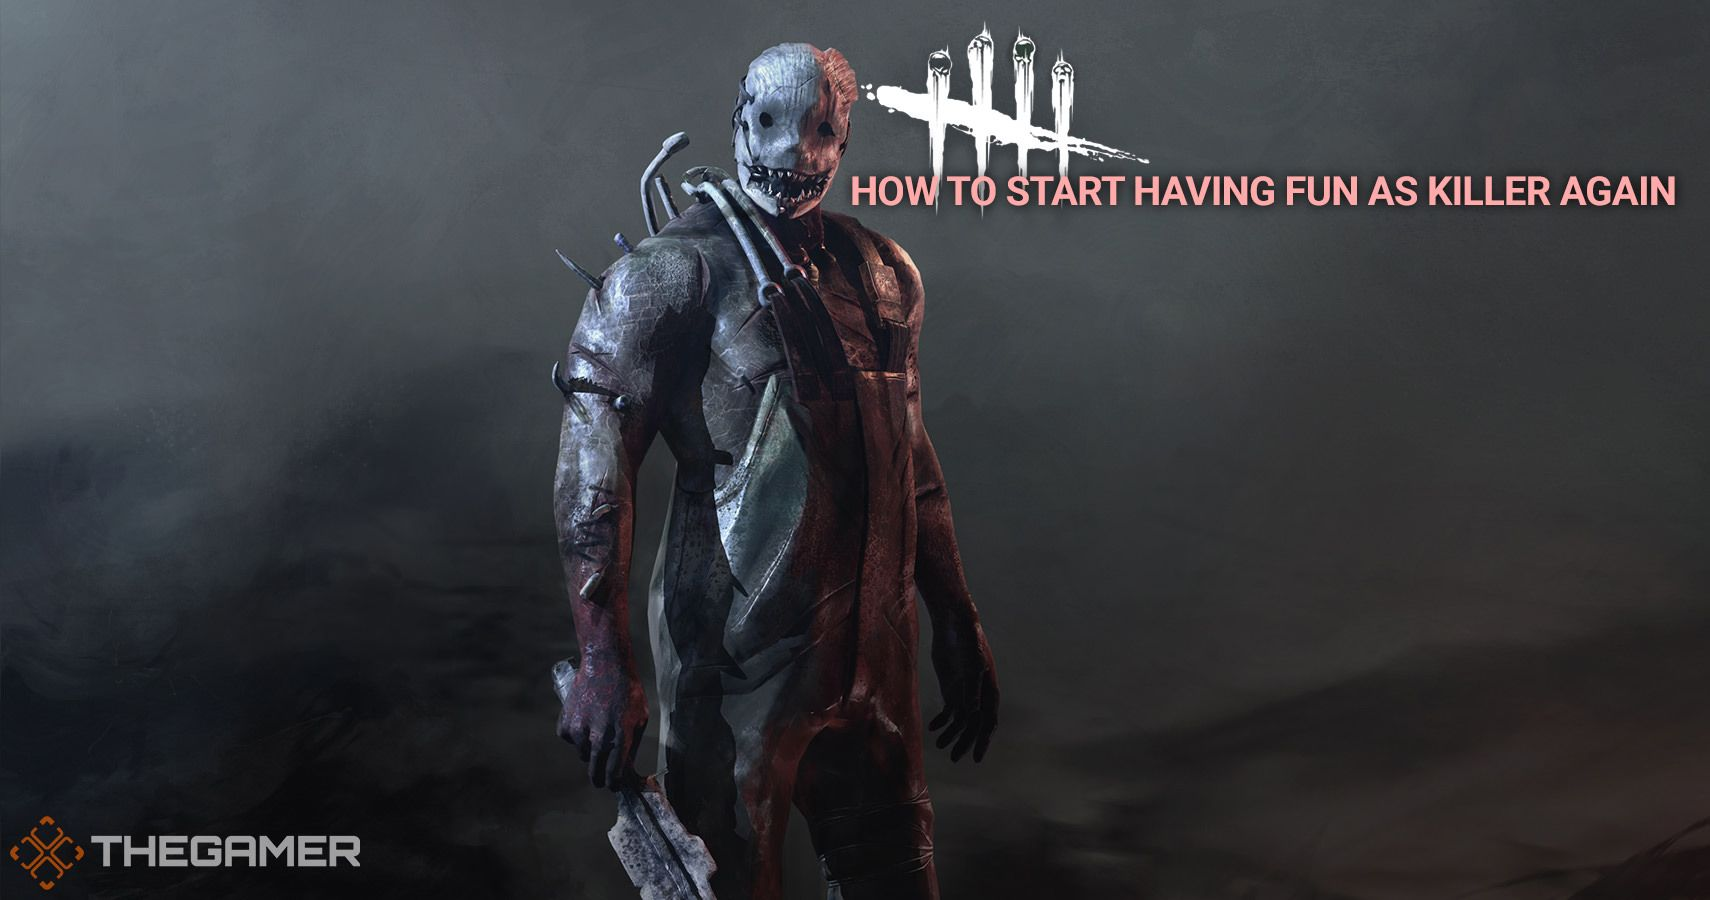 Dead By Daylight: How To Start Having Fun As Killer Again